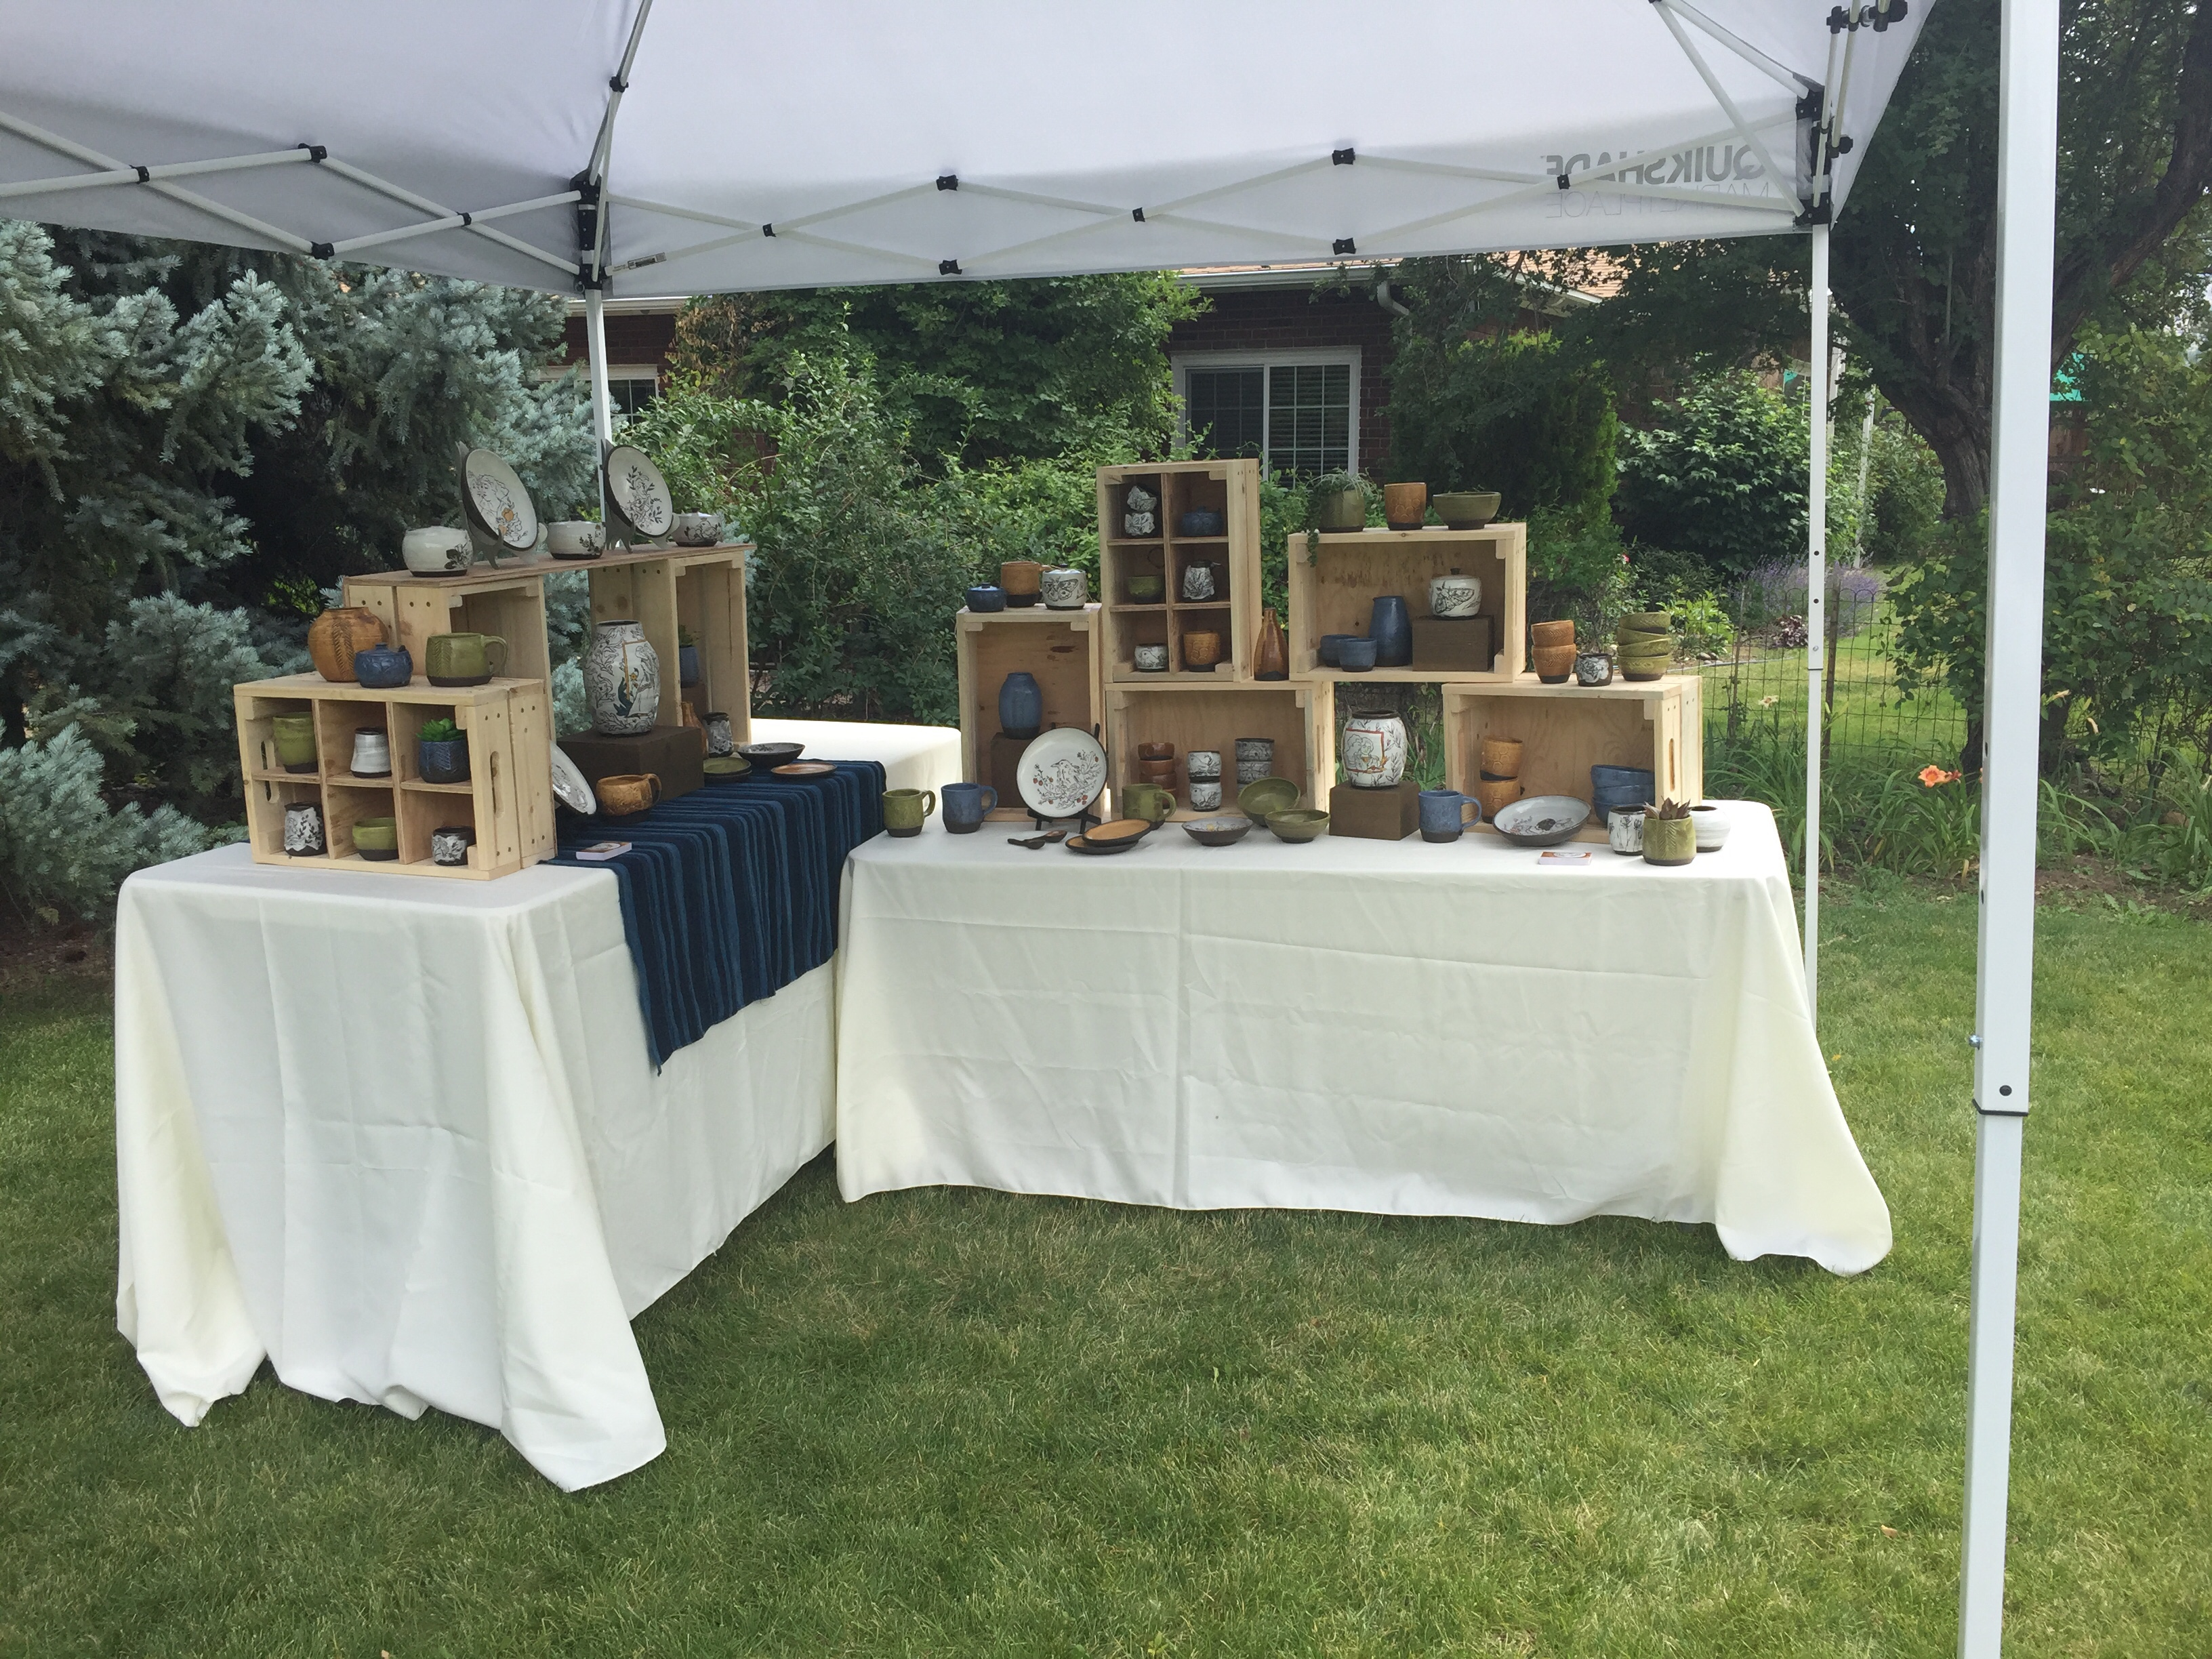 Wide view of the same pottery display - two tables with crates and pottery set in an L-shape on a lawn, under a white canopy.